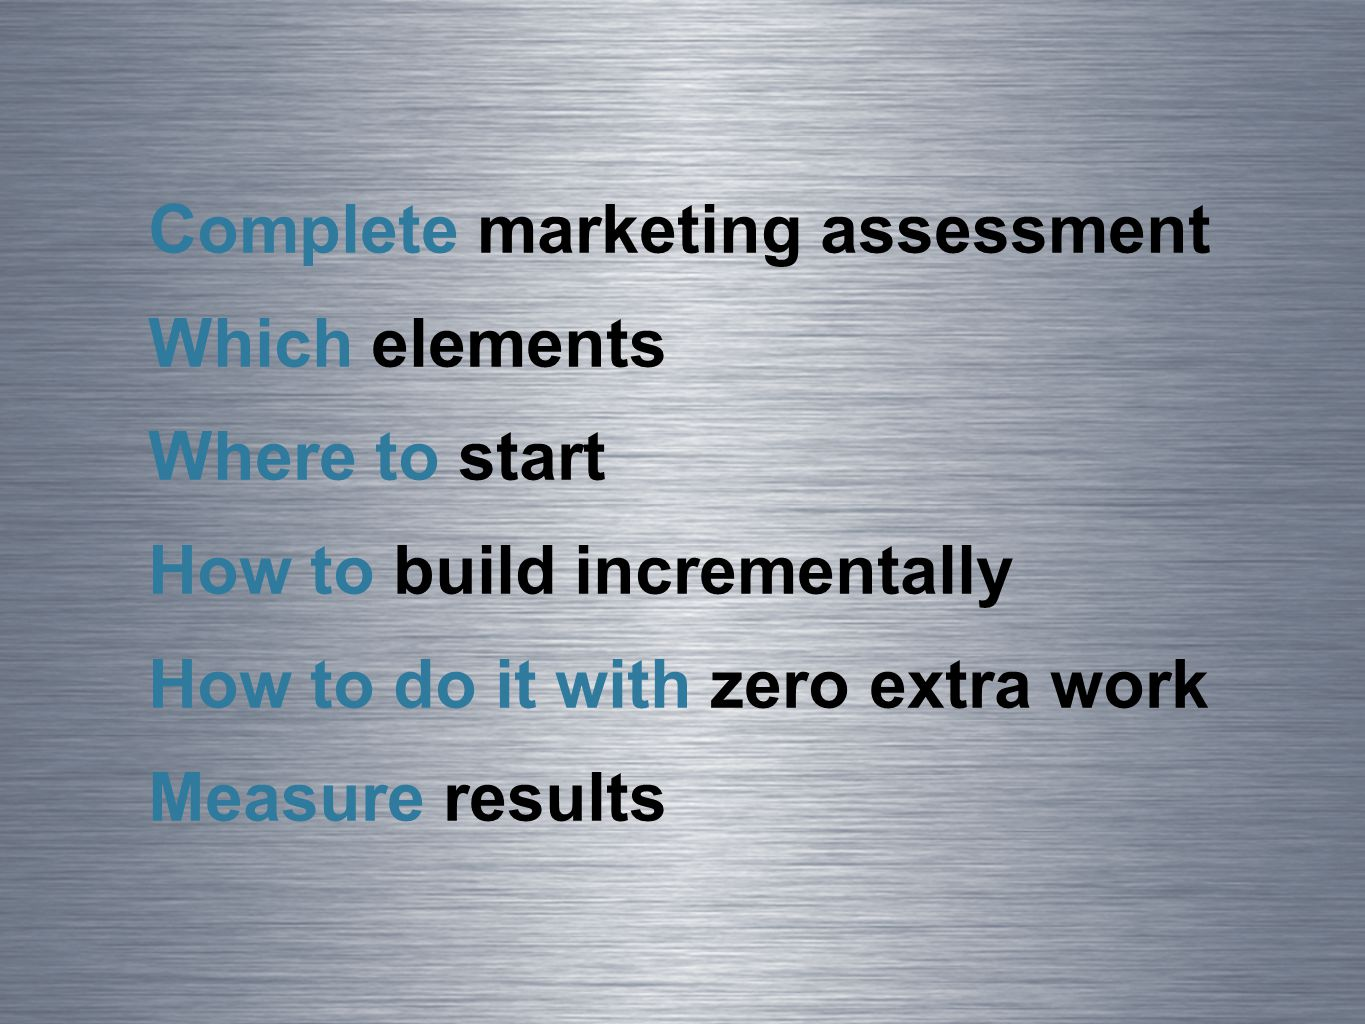 Complete marketing assessment Which elements Where to start How to build incrementally How to do it with zero extra work Measure results